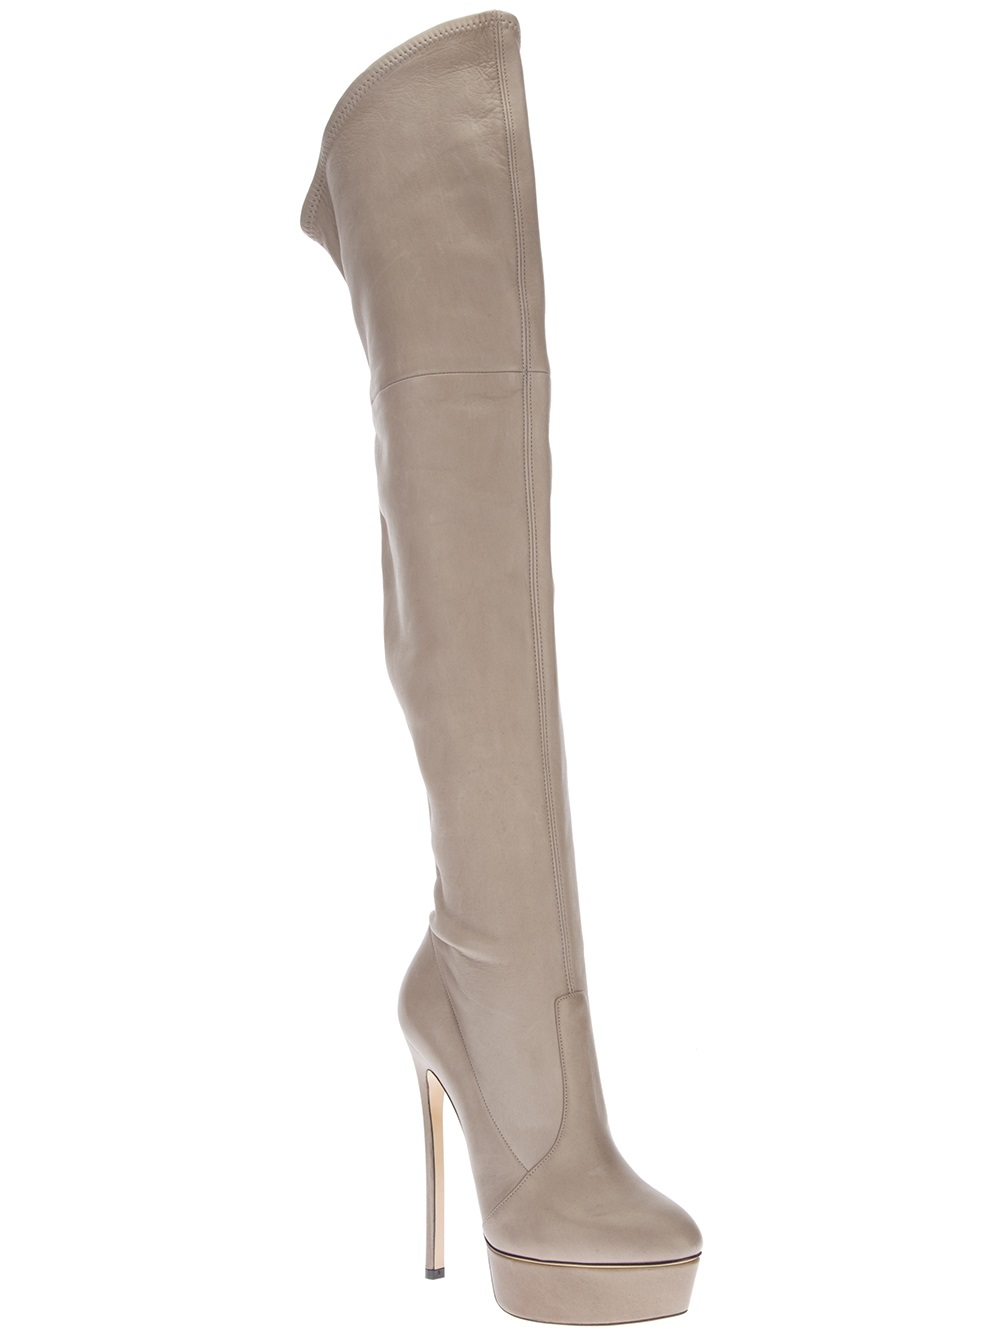 9e186635fb8 Lyst - Casadei Thigh High Stiletto Boot in Gray